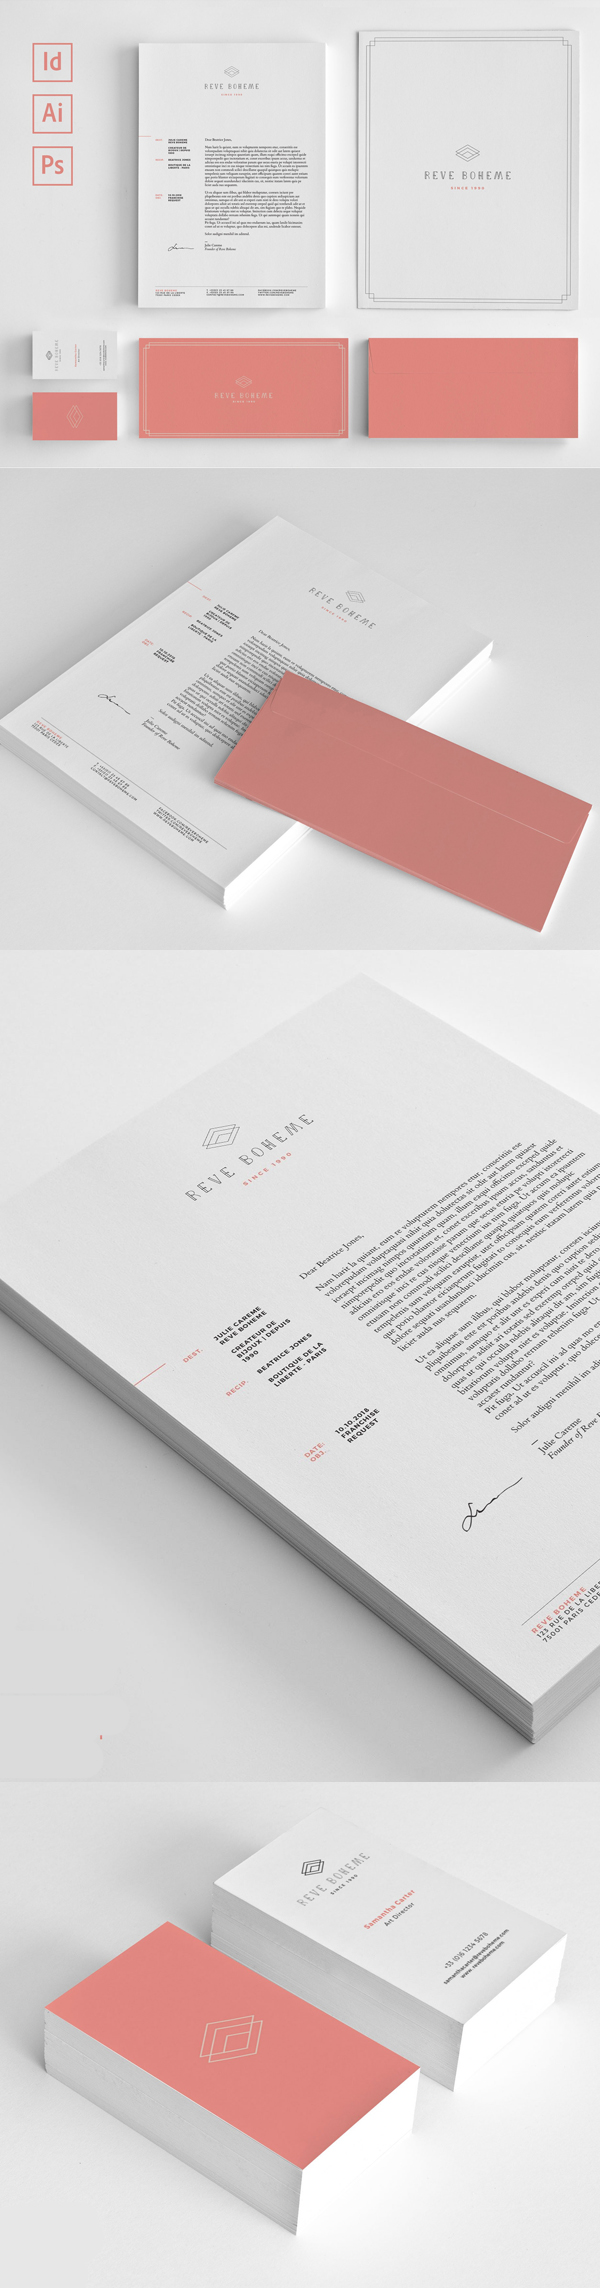 corporate branding stationery templates design graphic design